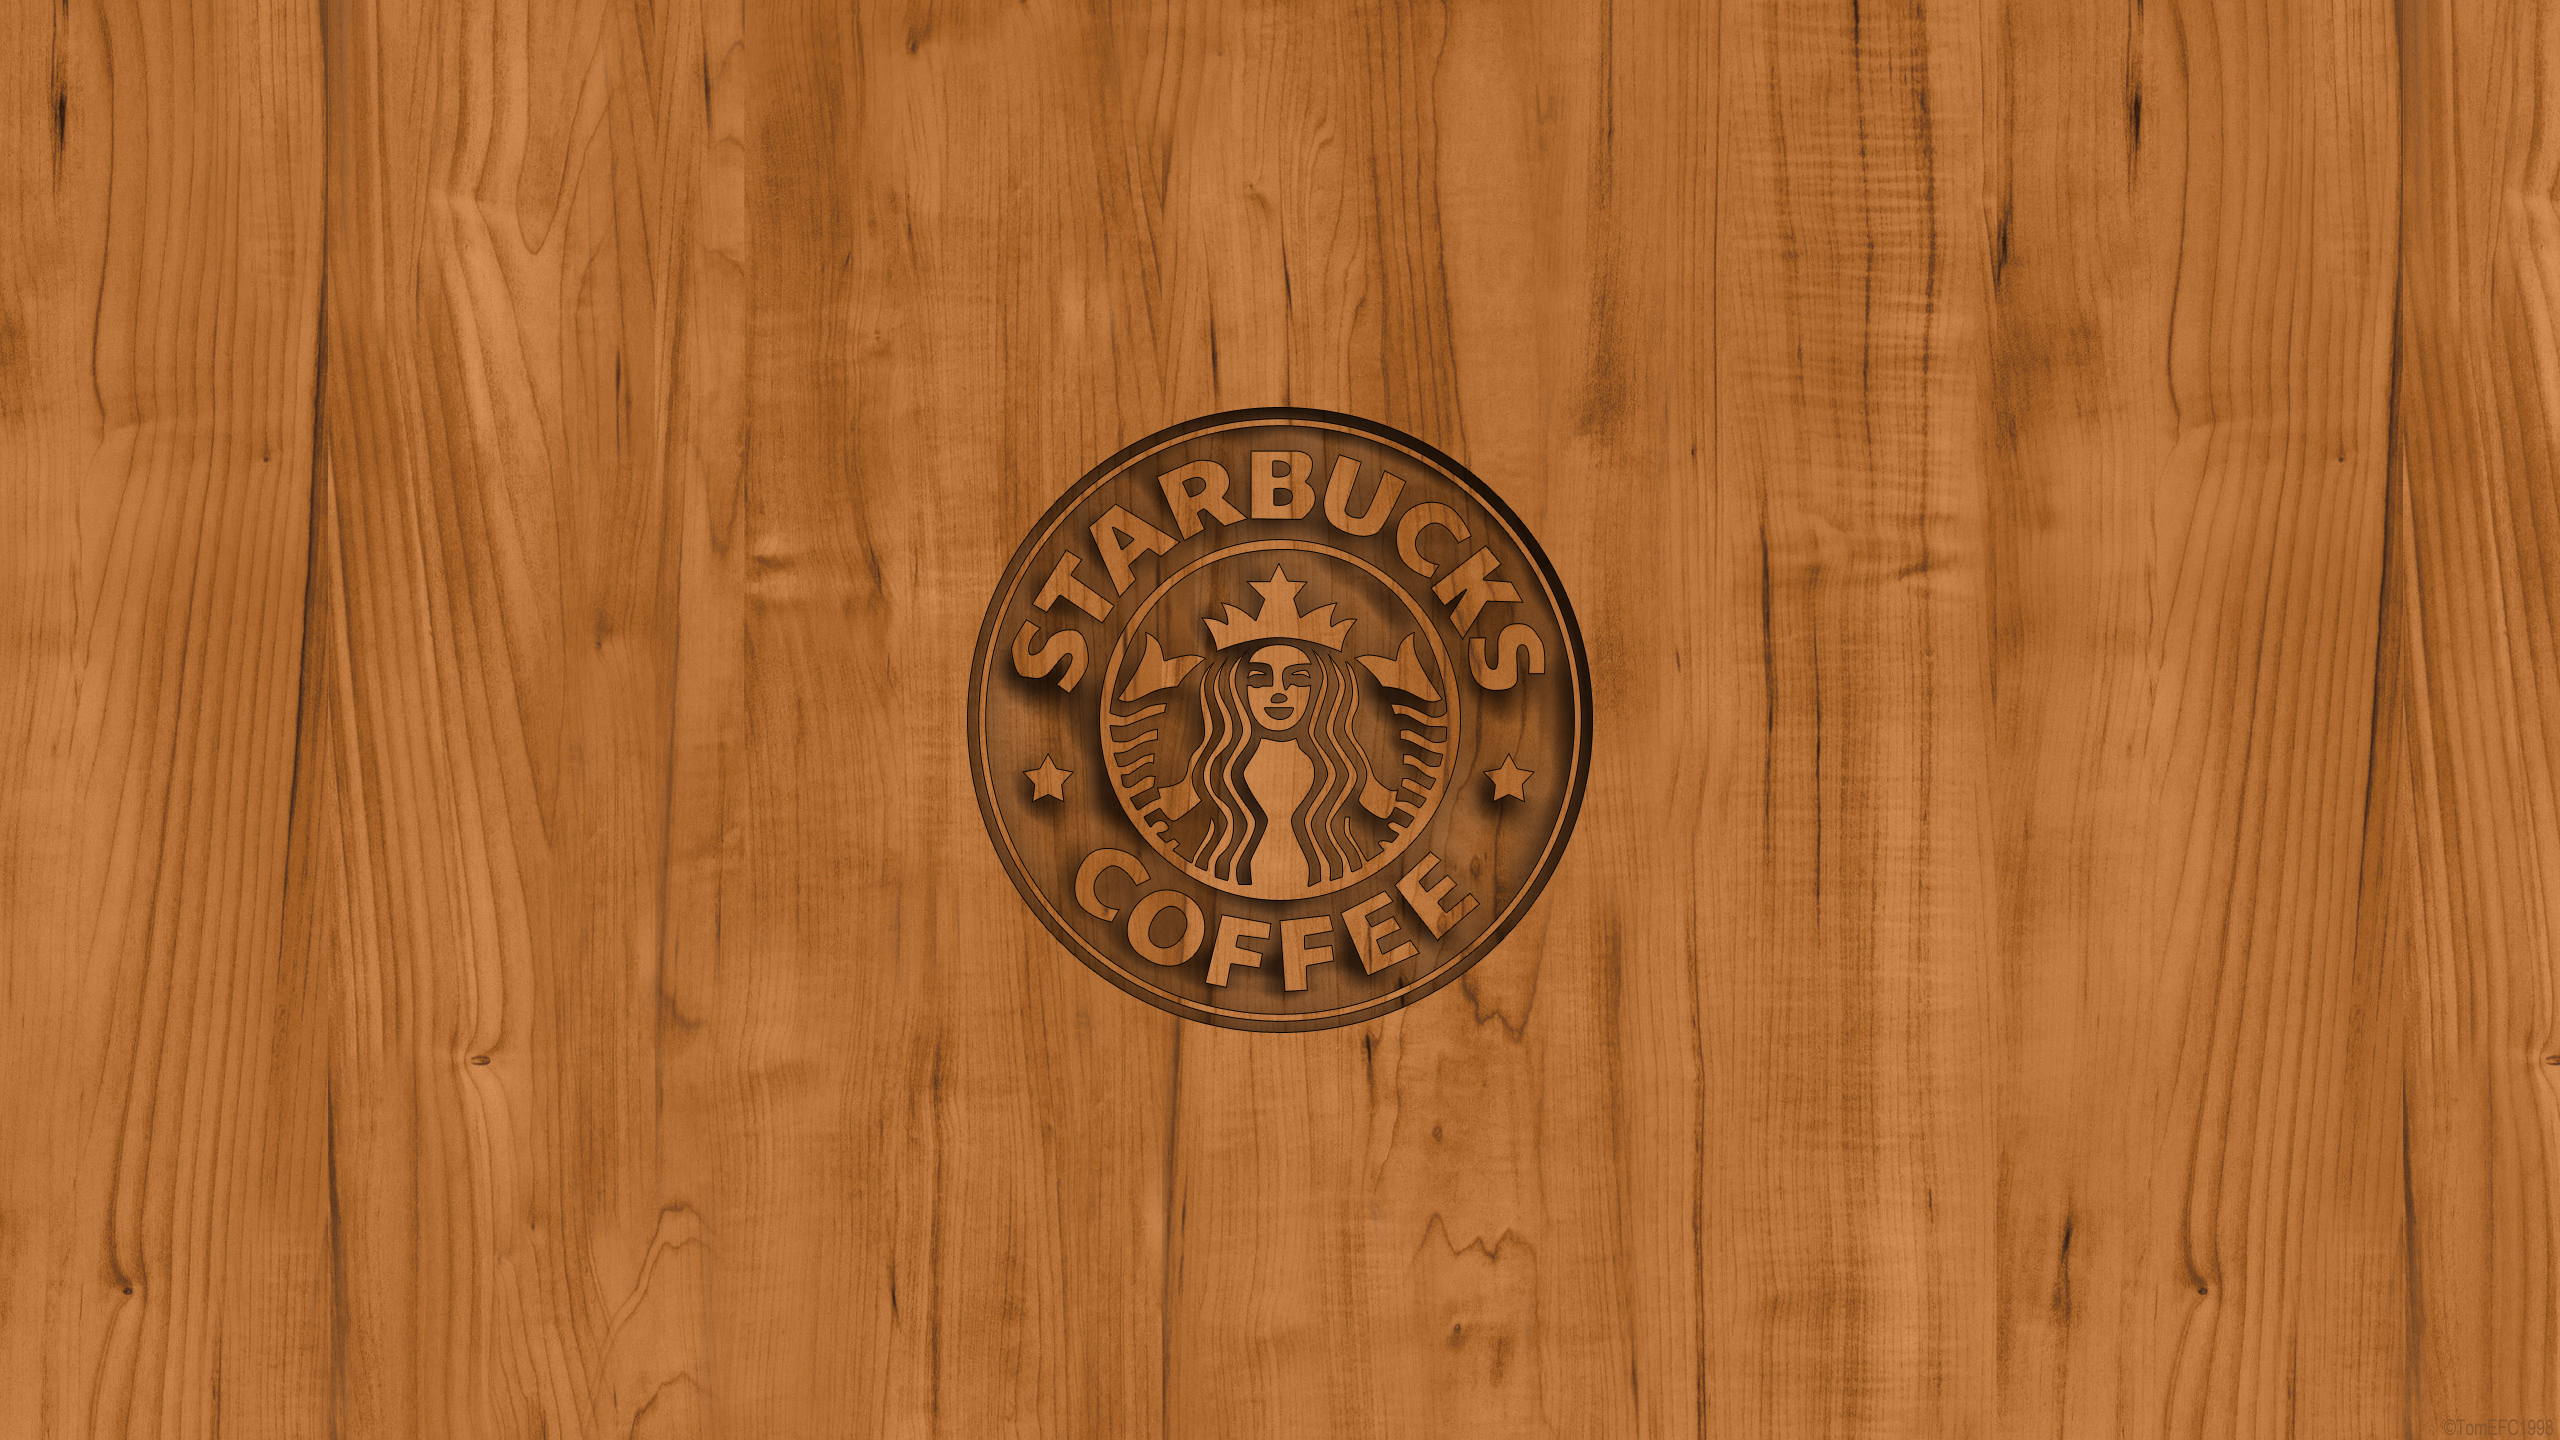 Starbucks Coffee Logo Wood Wallpaper by TomEFC98 on DeviantArt